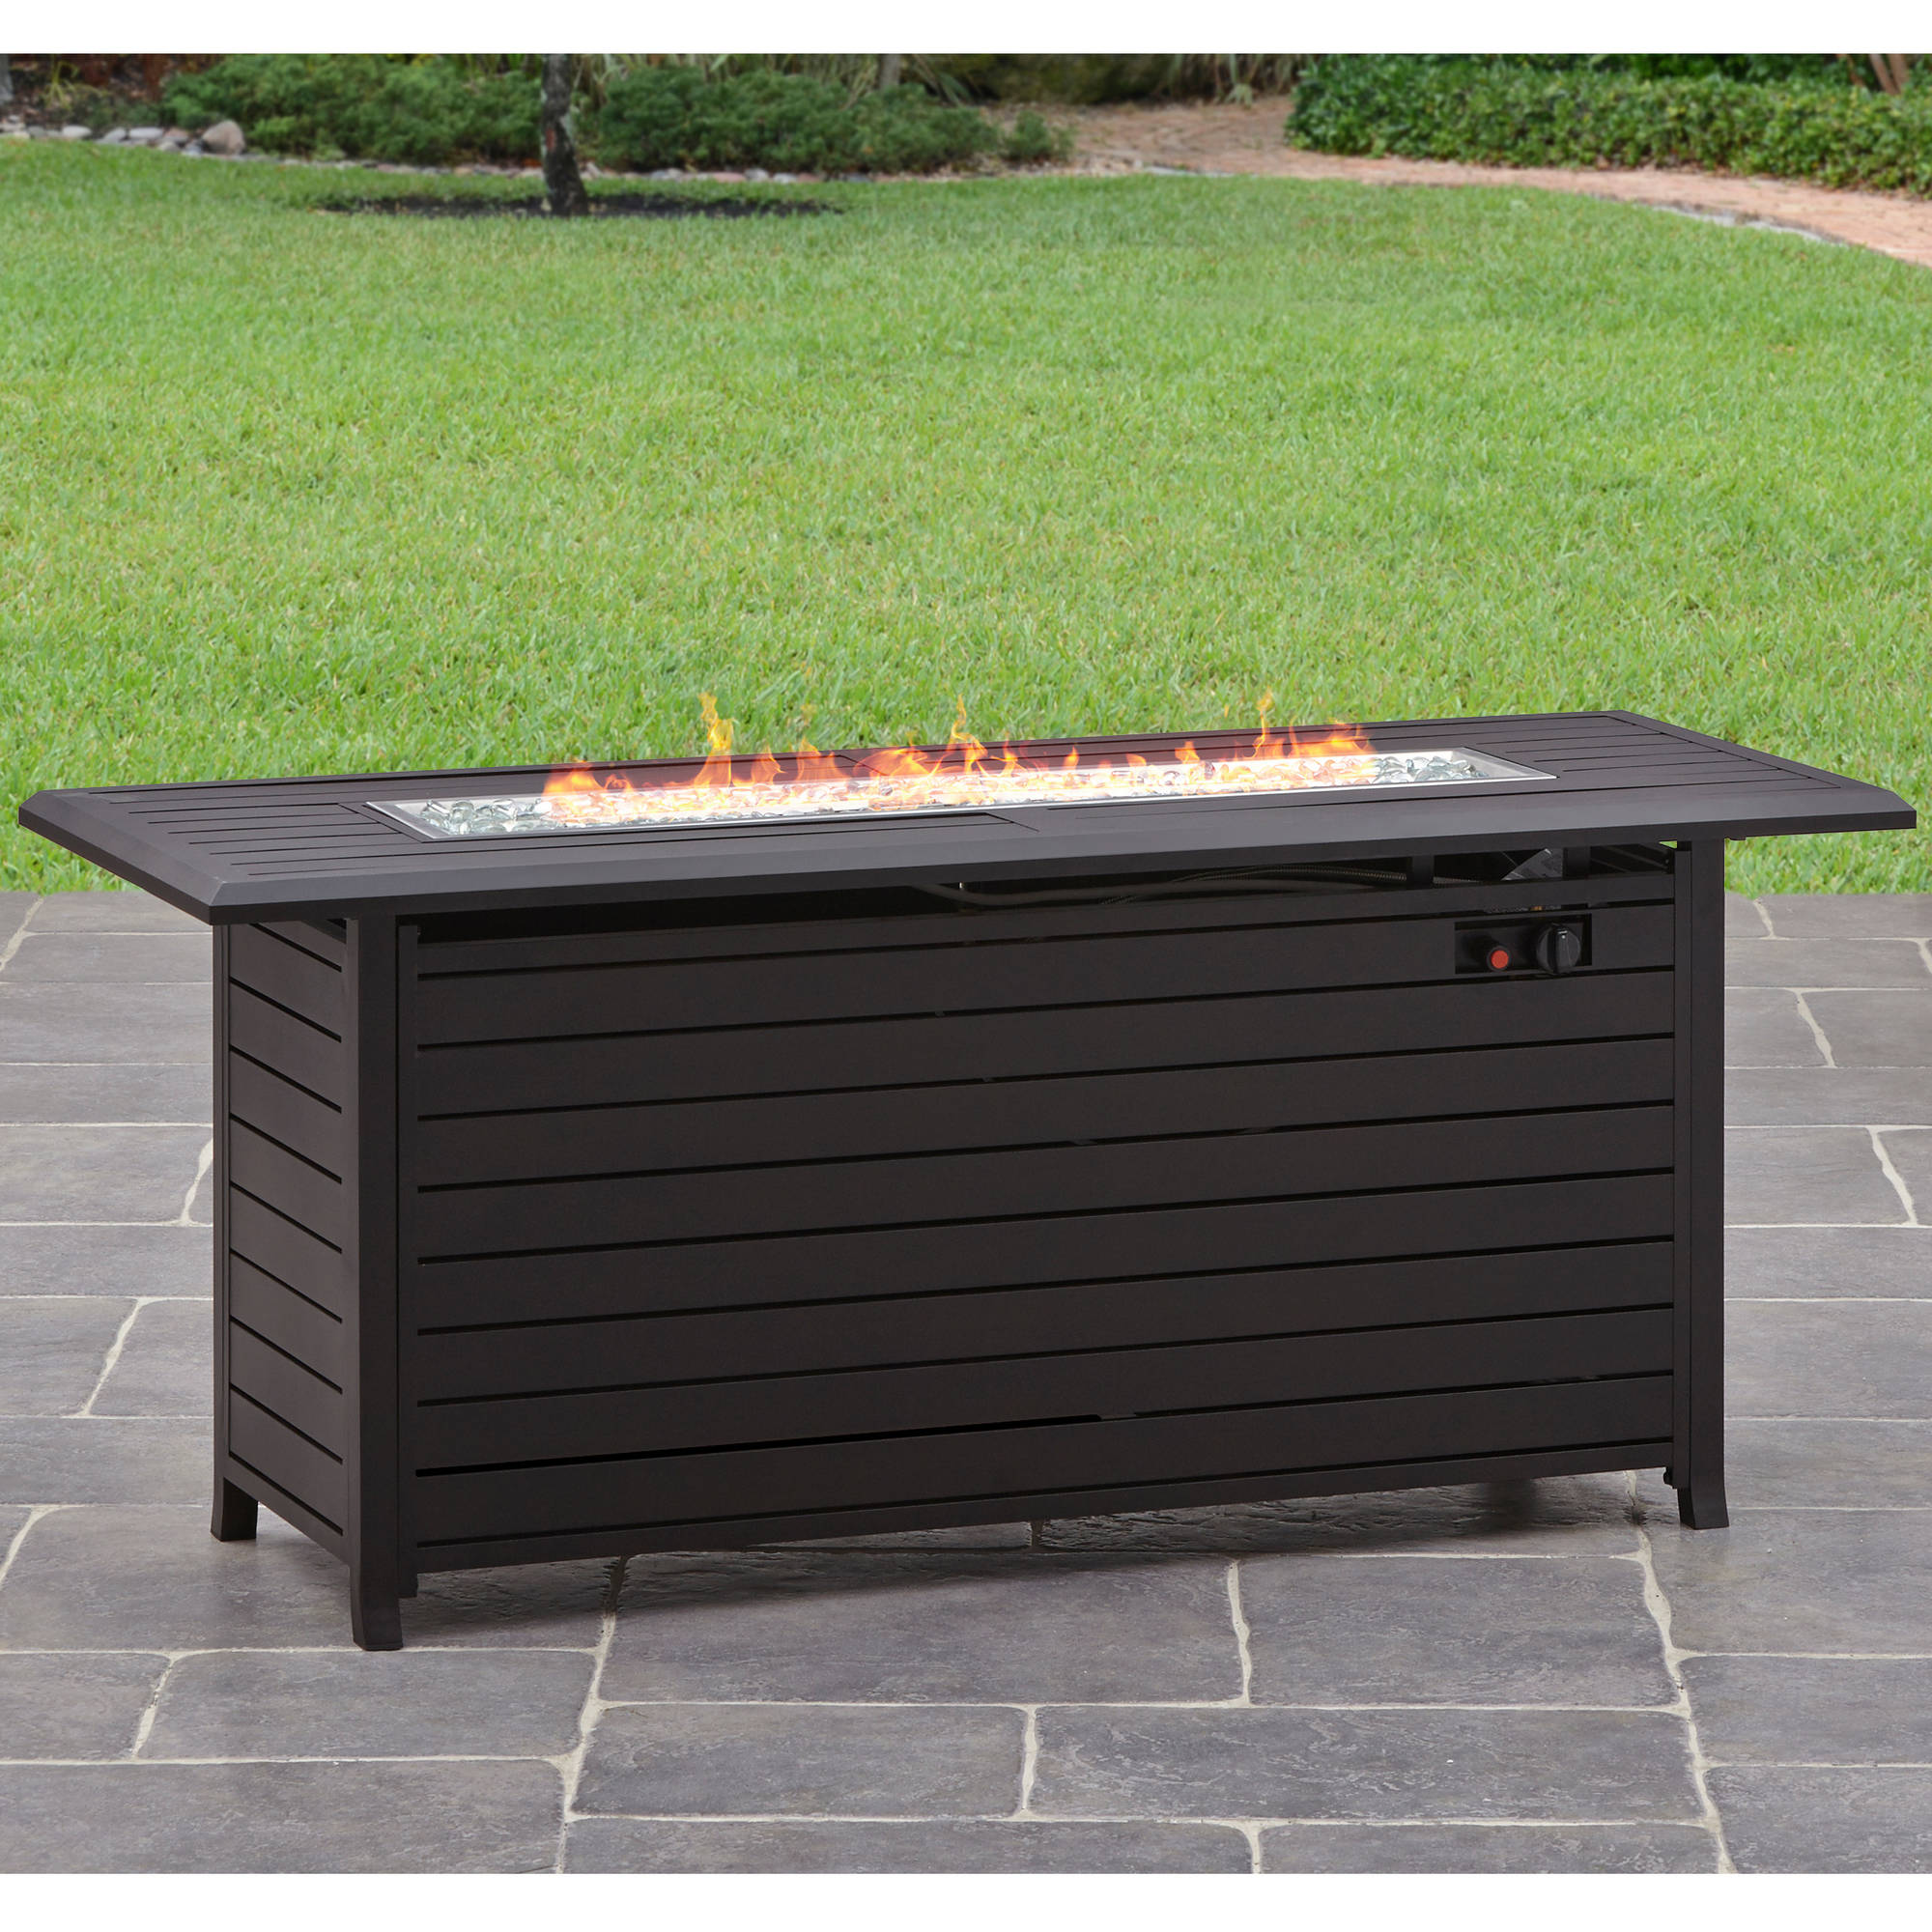 Better Homes And Gardens Carter Hills 57 Gas Fire Pit Walmart Com Walmart Com